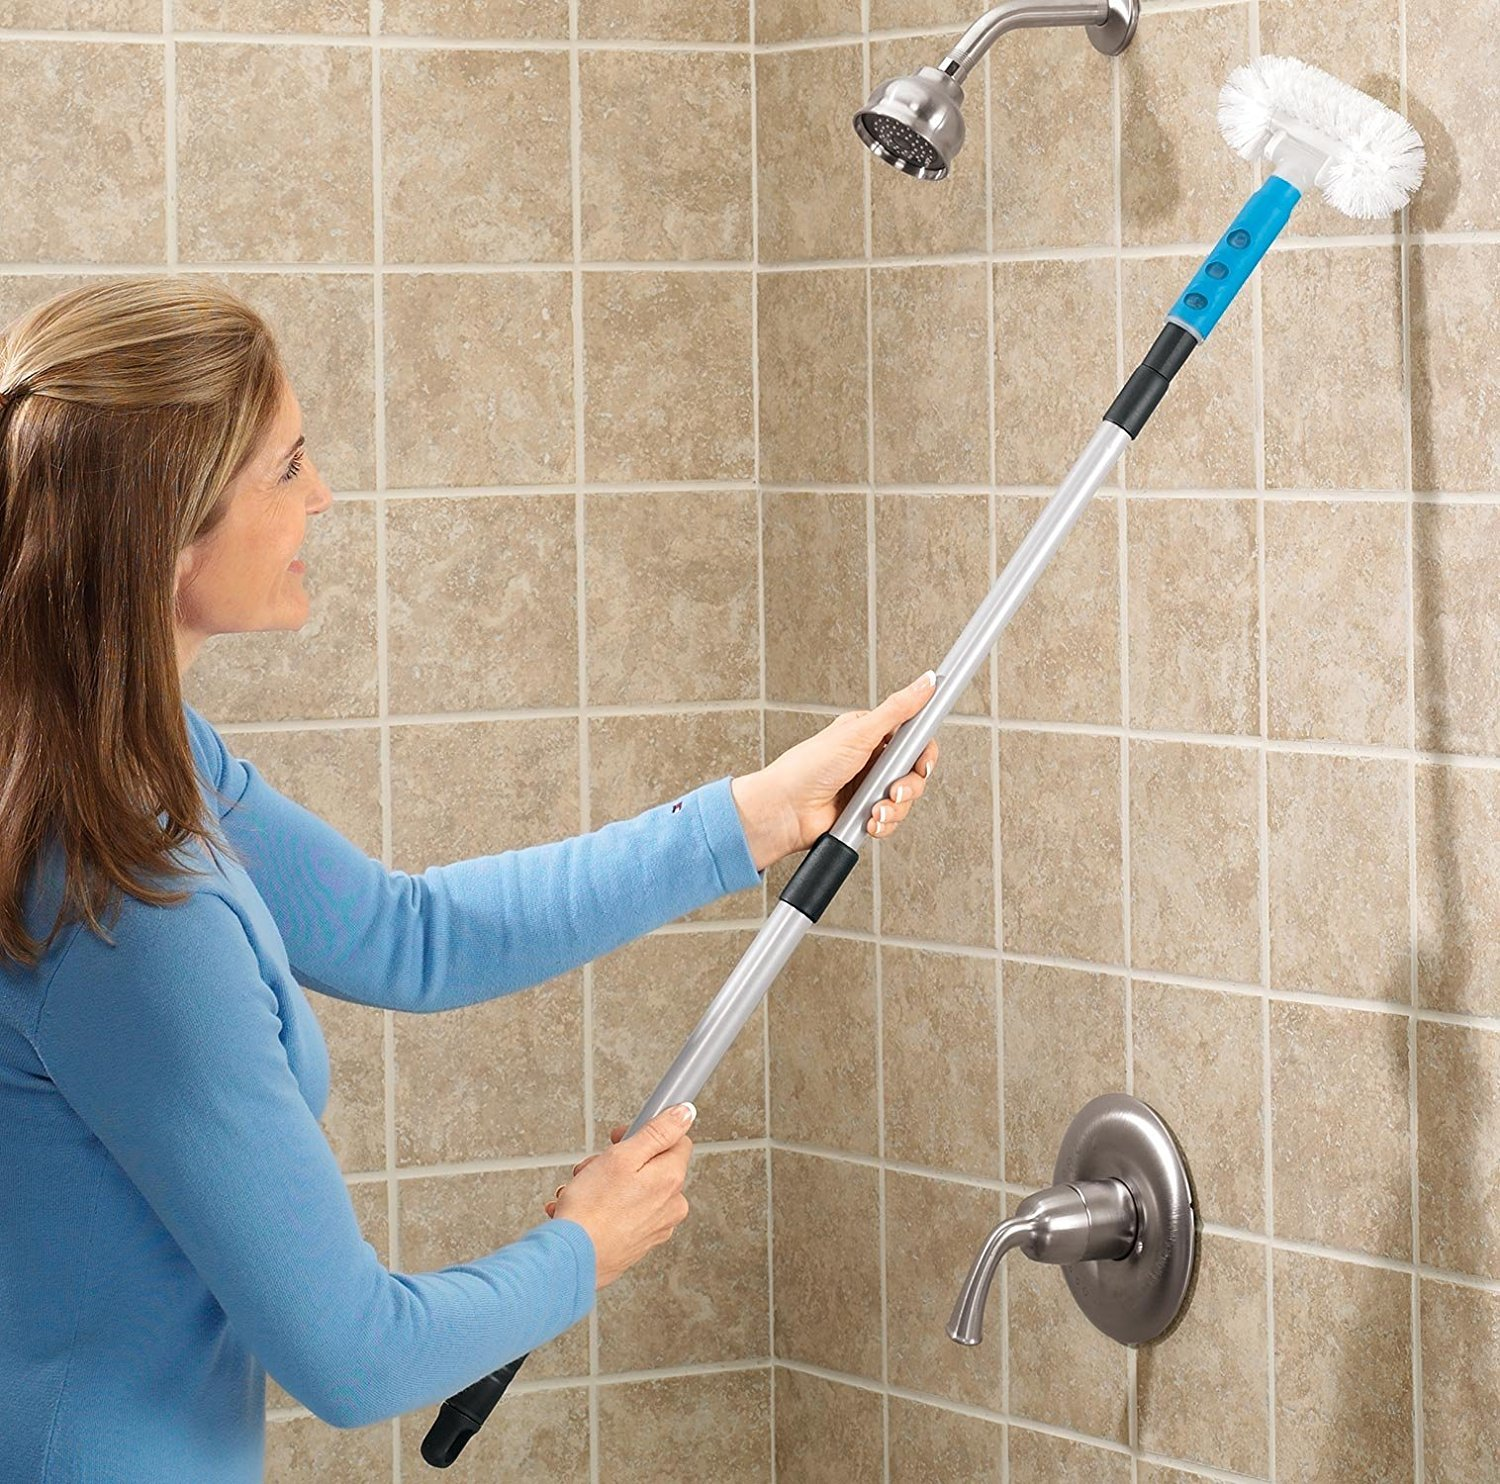 Amazoncom Telescopic Tub Tile Scrubber Cleaning Brushes